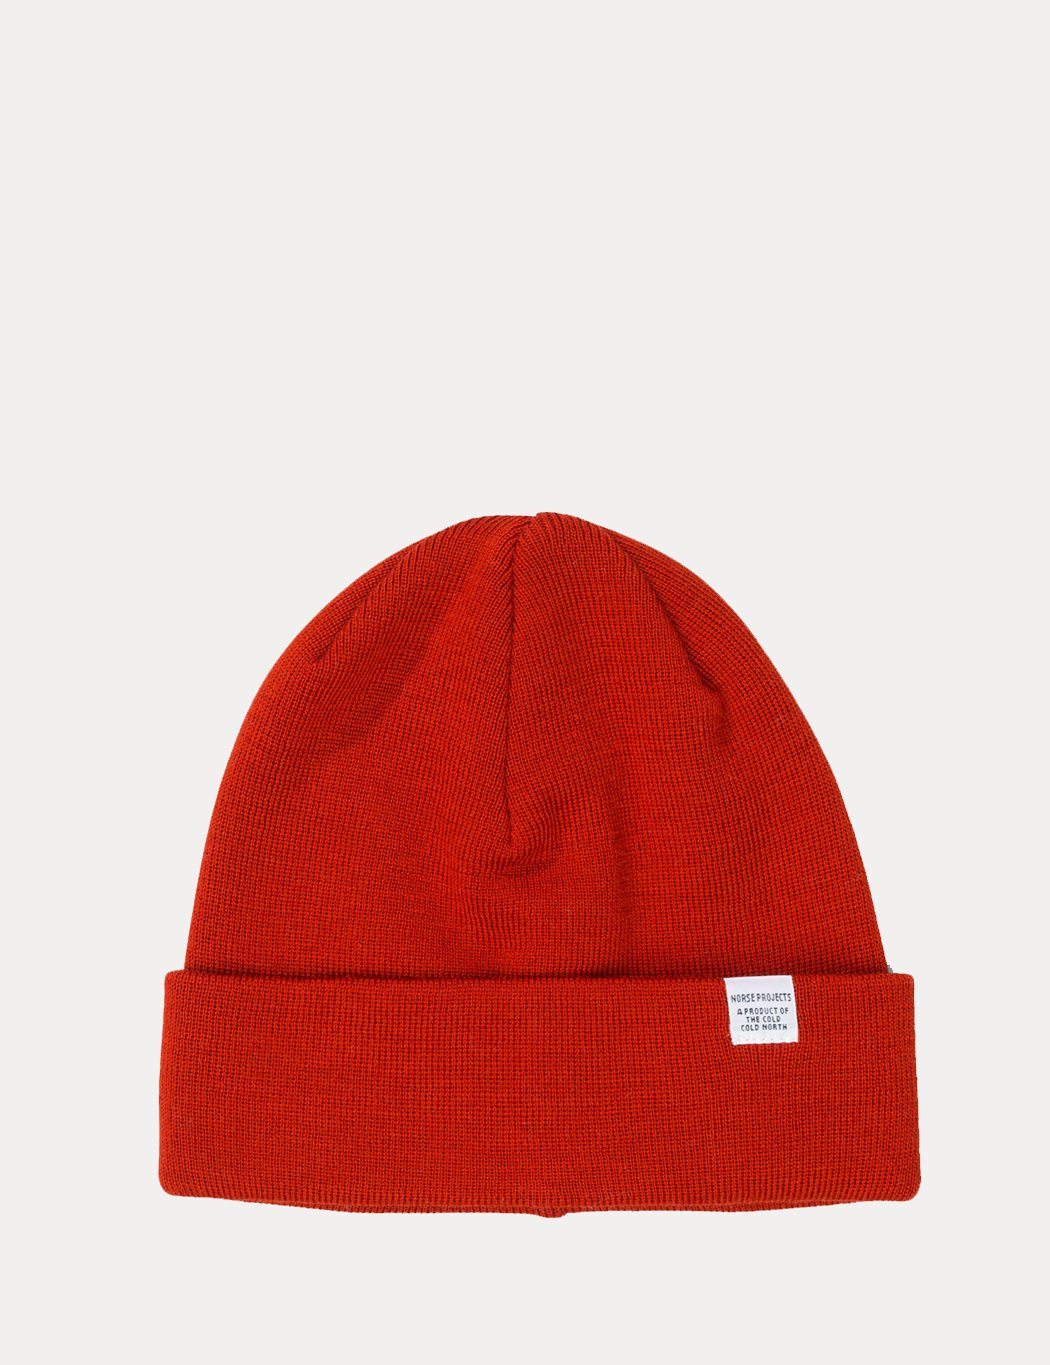 Norse Projects Top Beanie Hat - Oxide Orange